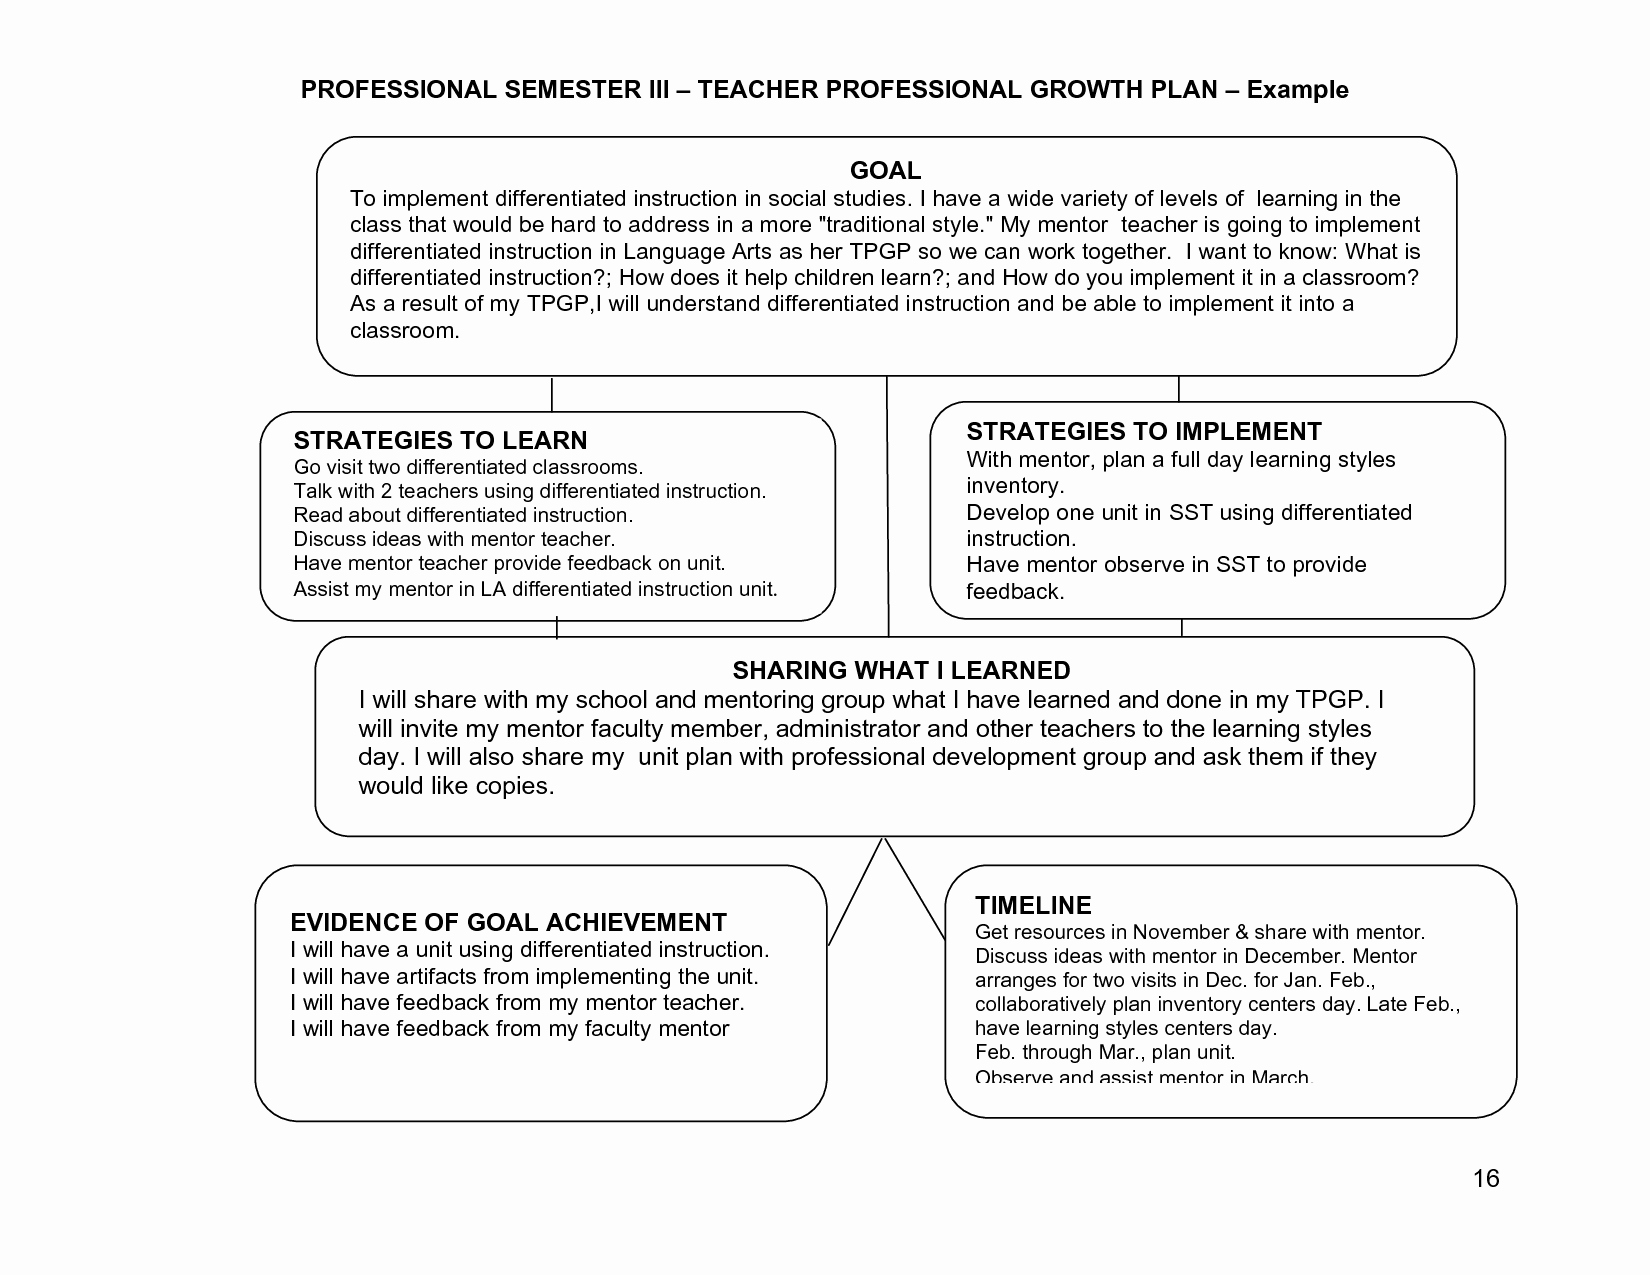 Professional Development Plan Template New Learning Plans or Goals for Teachers